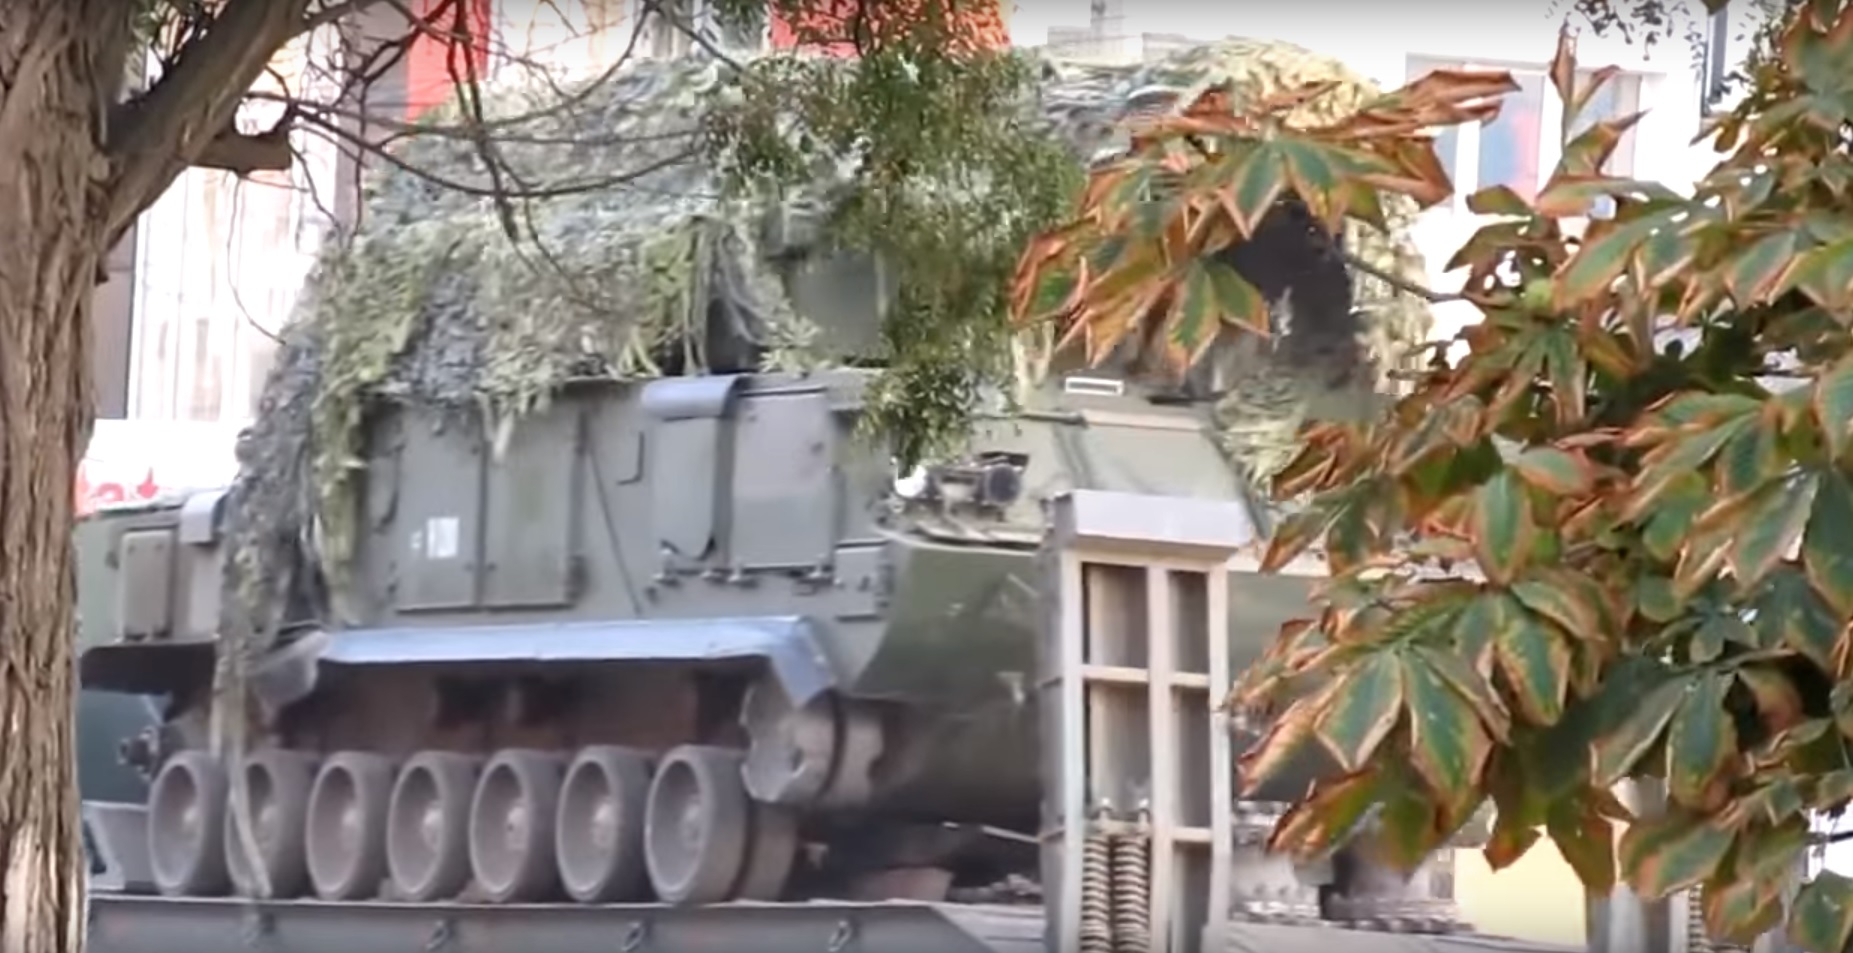 Tor series surface-to-air missile systems in Ukraine